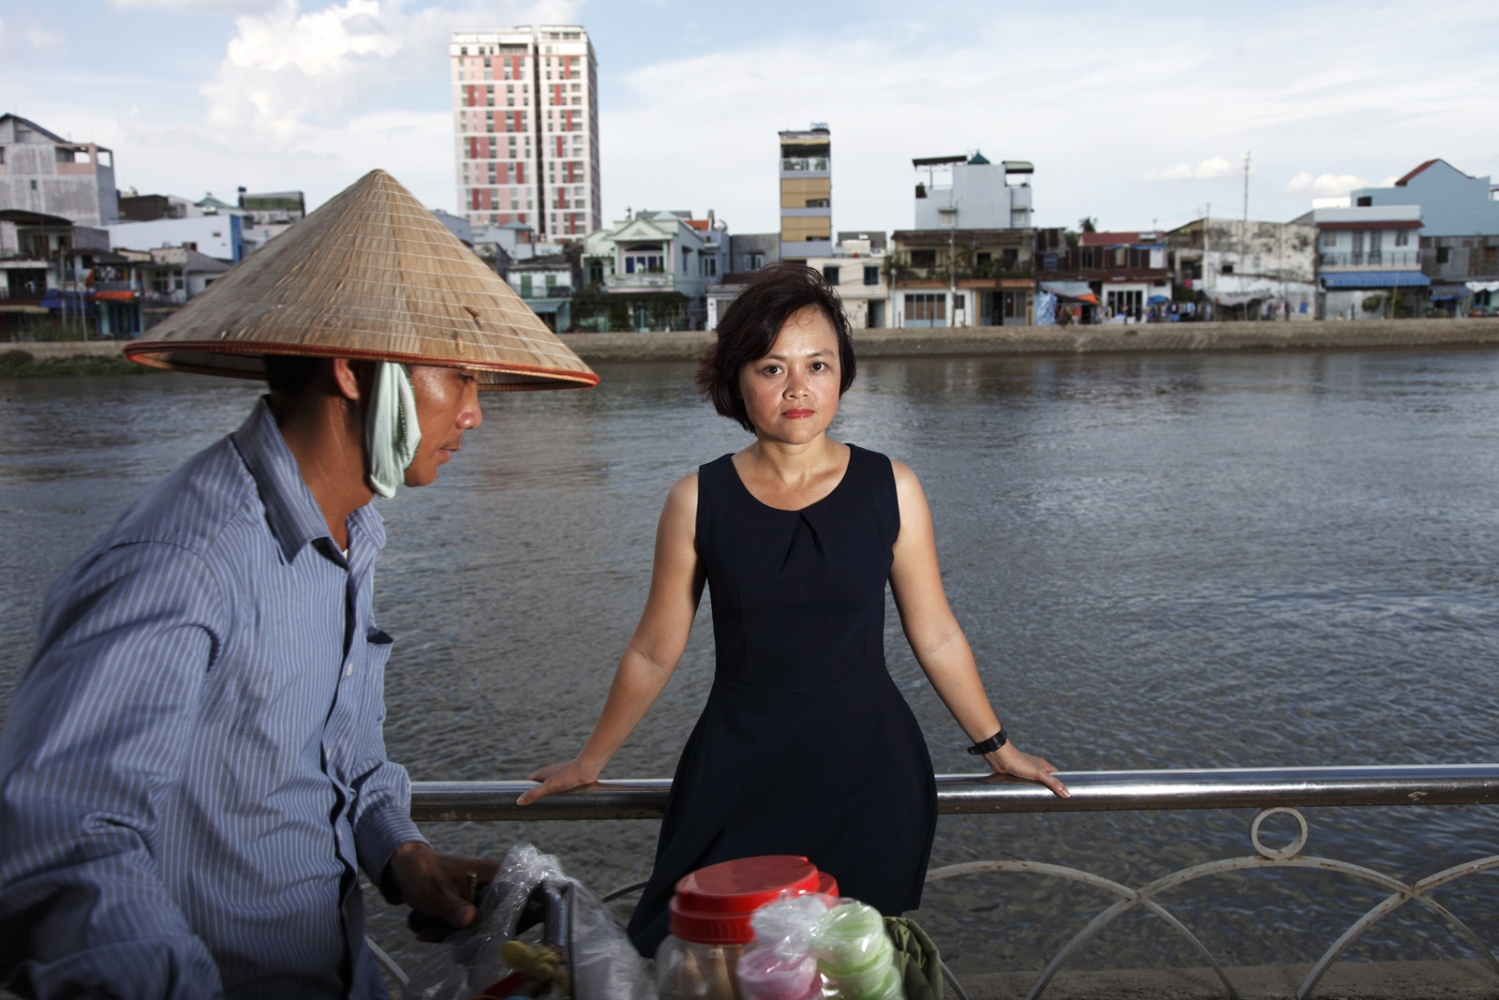 Hong Hoang of Vietnam's office of 350.org is photographed by a river in Ho Chi Minh City.